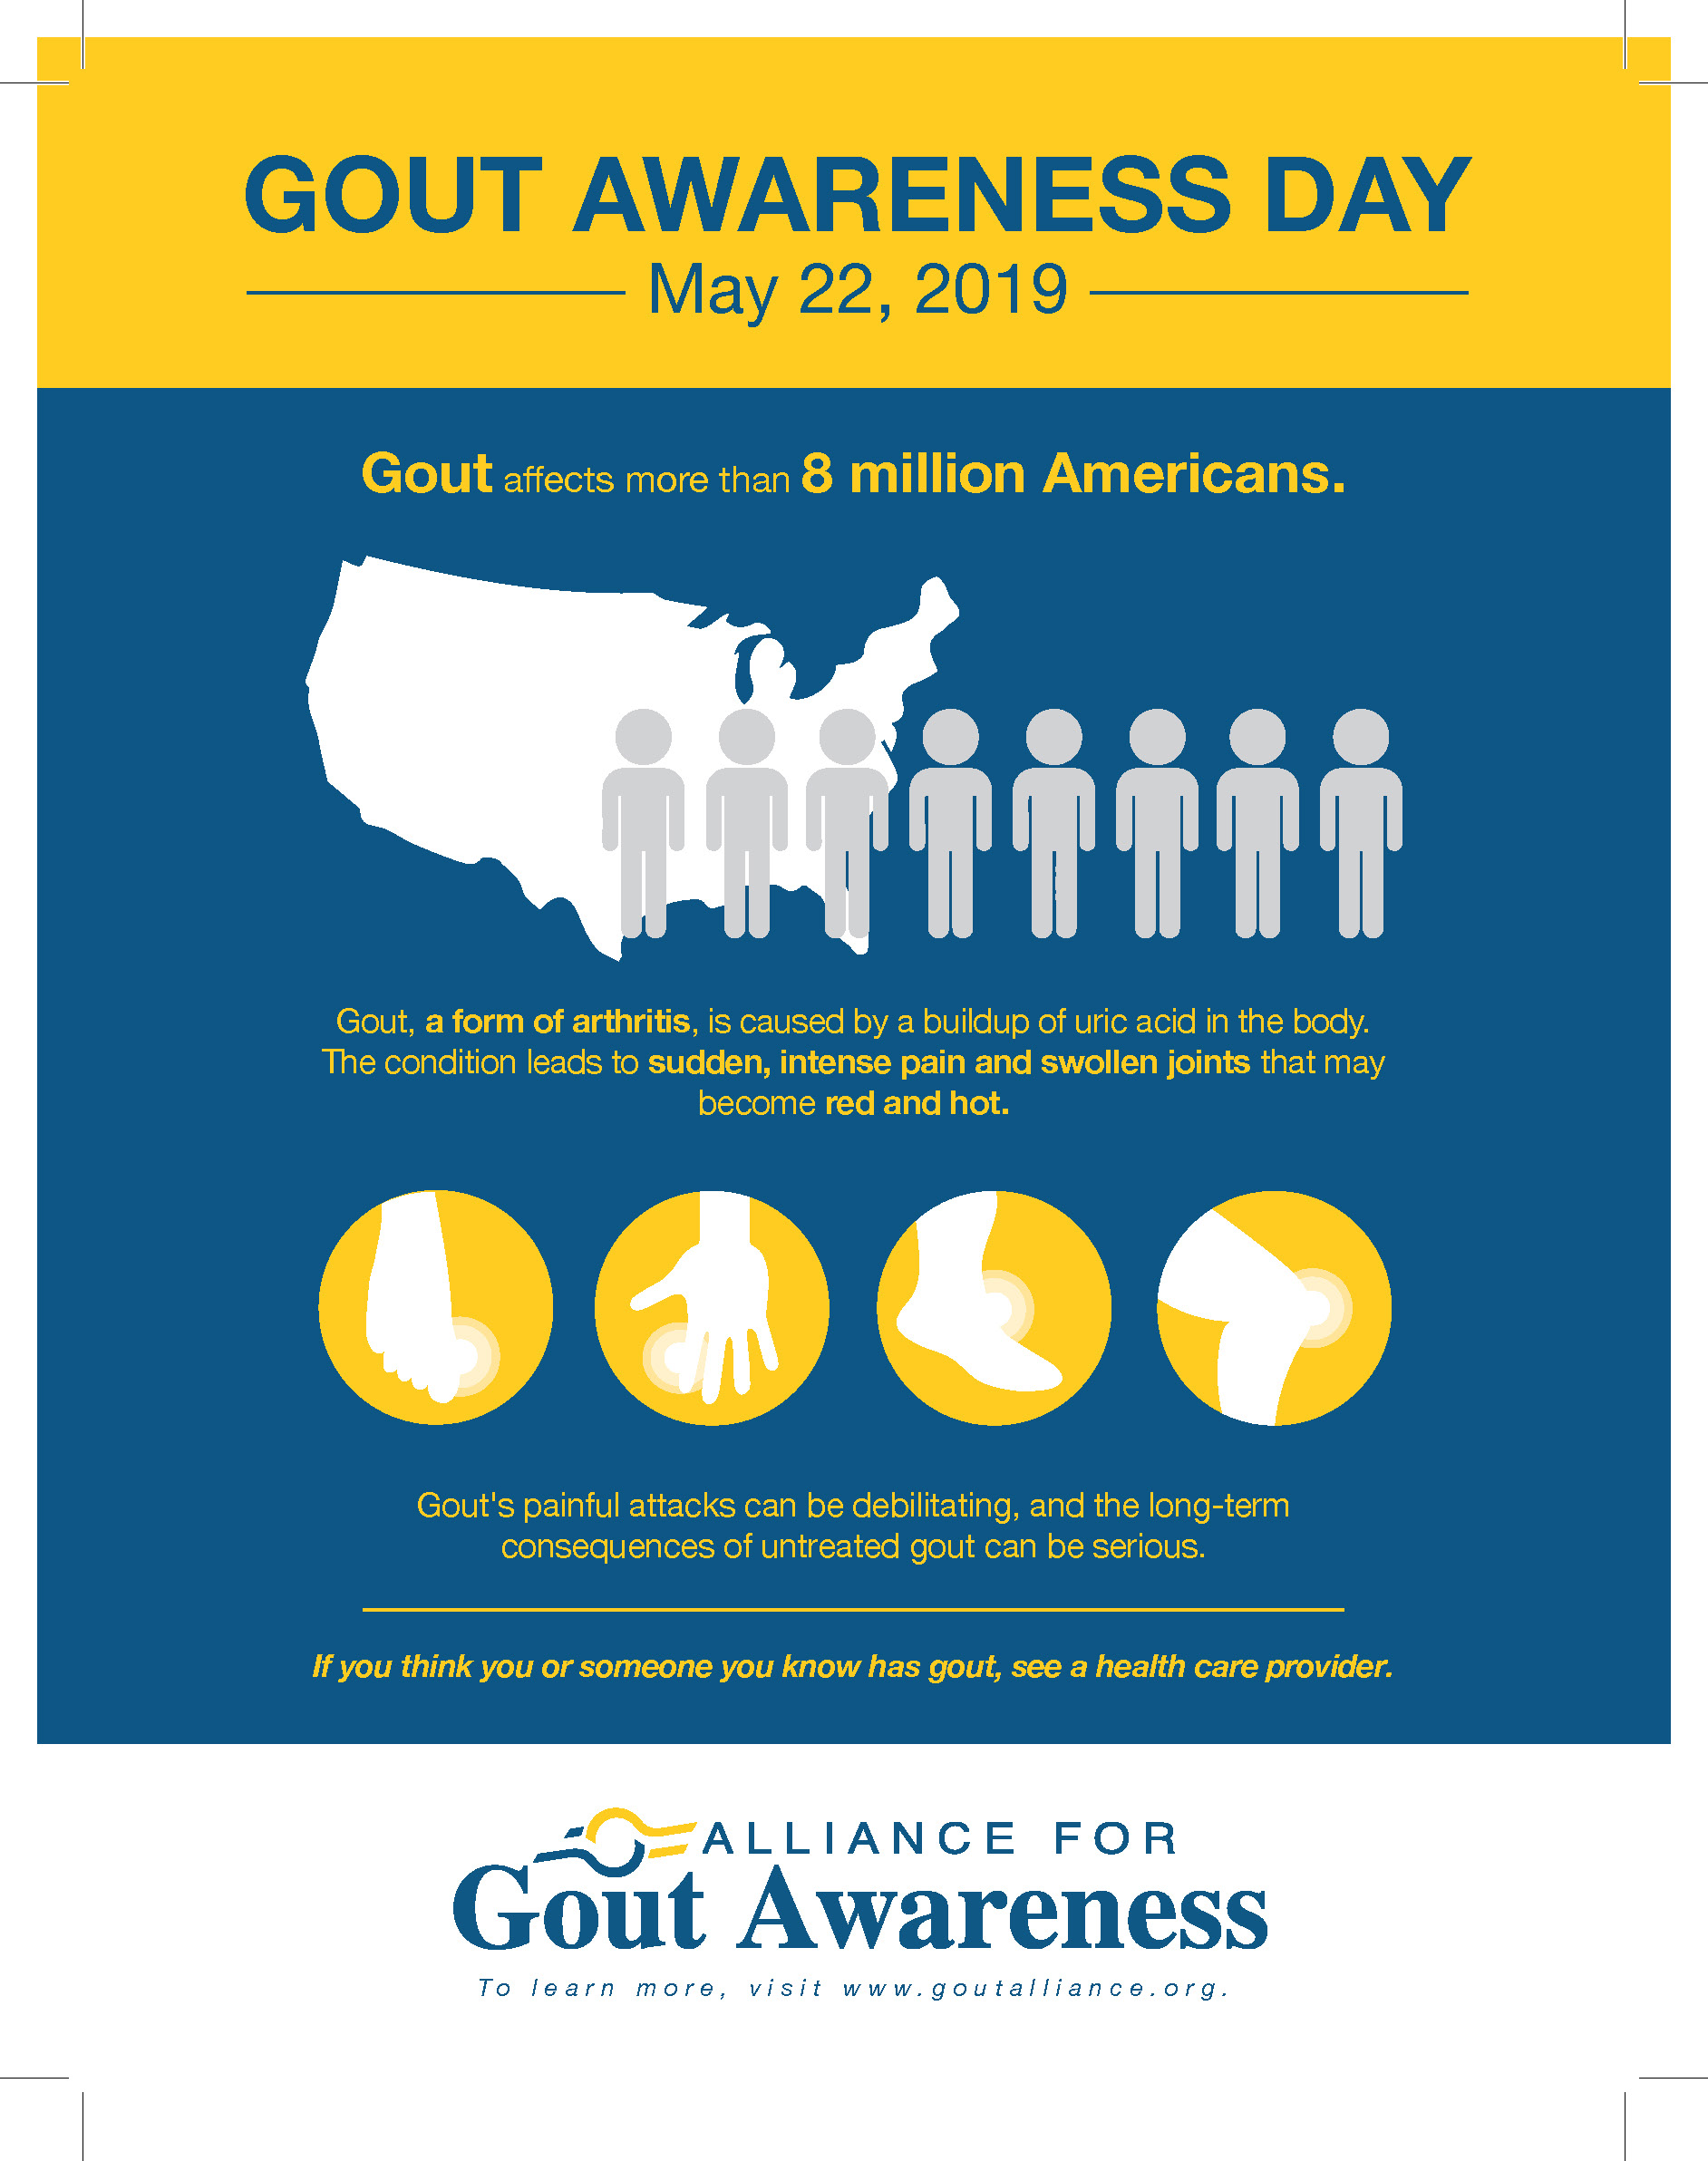 gout-awareness-day-graphic-letter.jpg